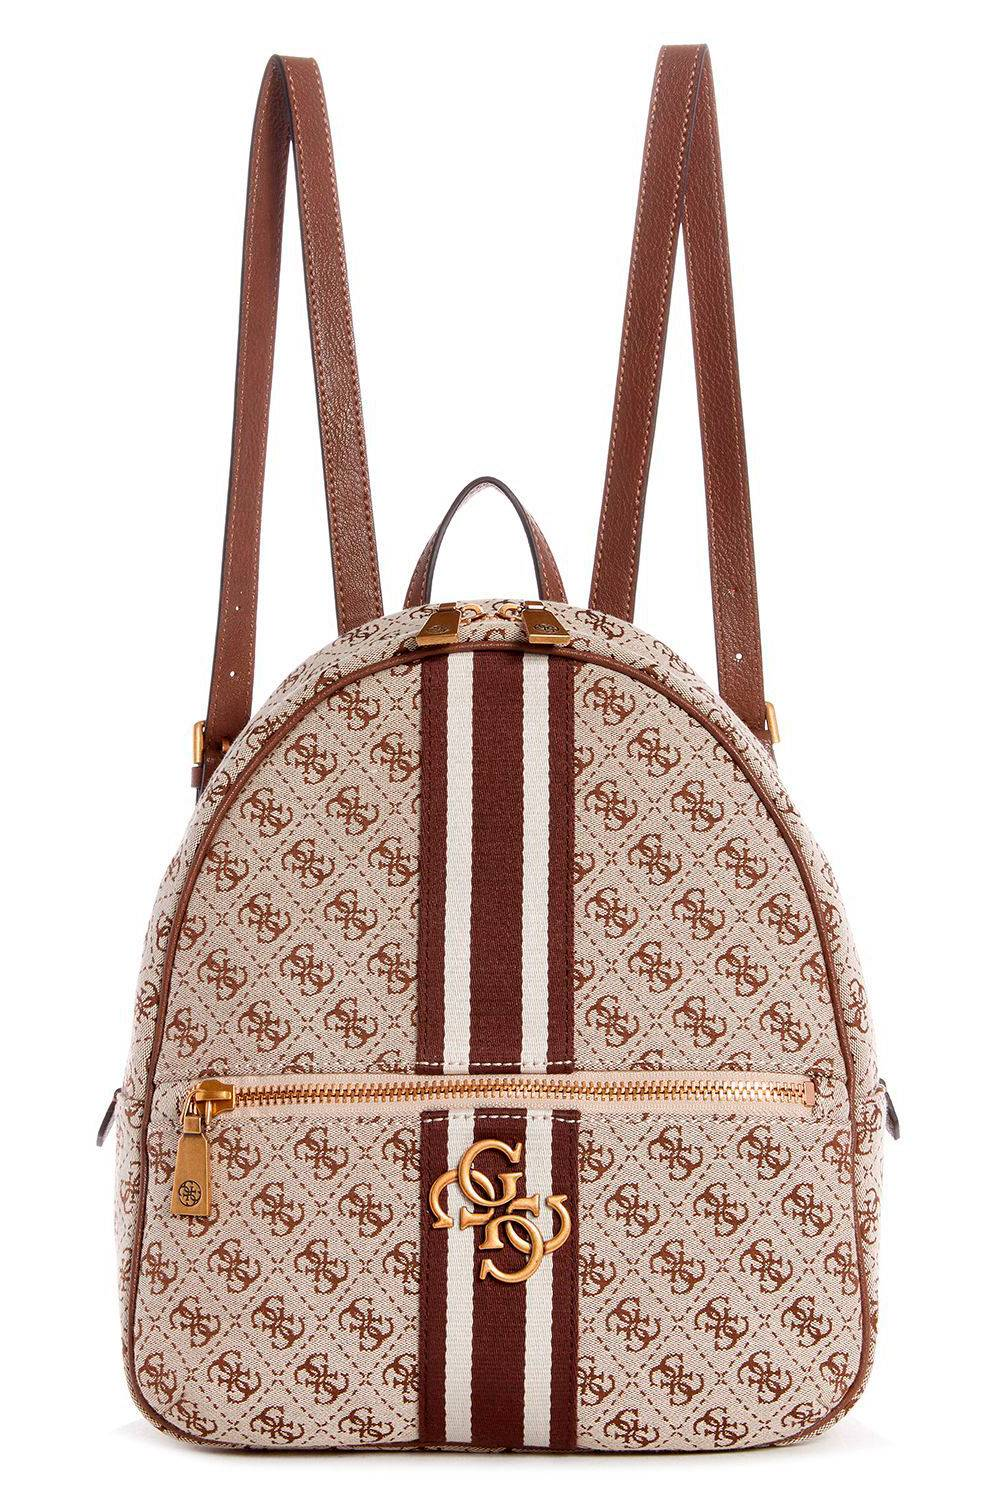 Guess - Morral Guess Vintage